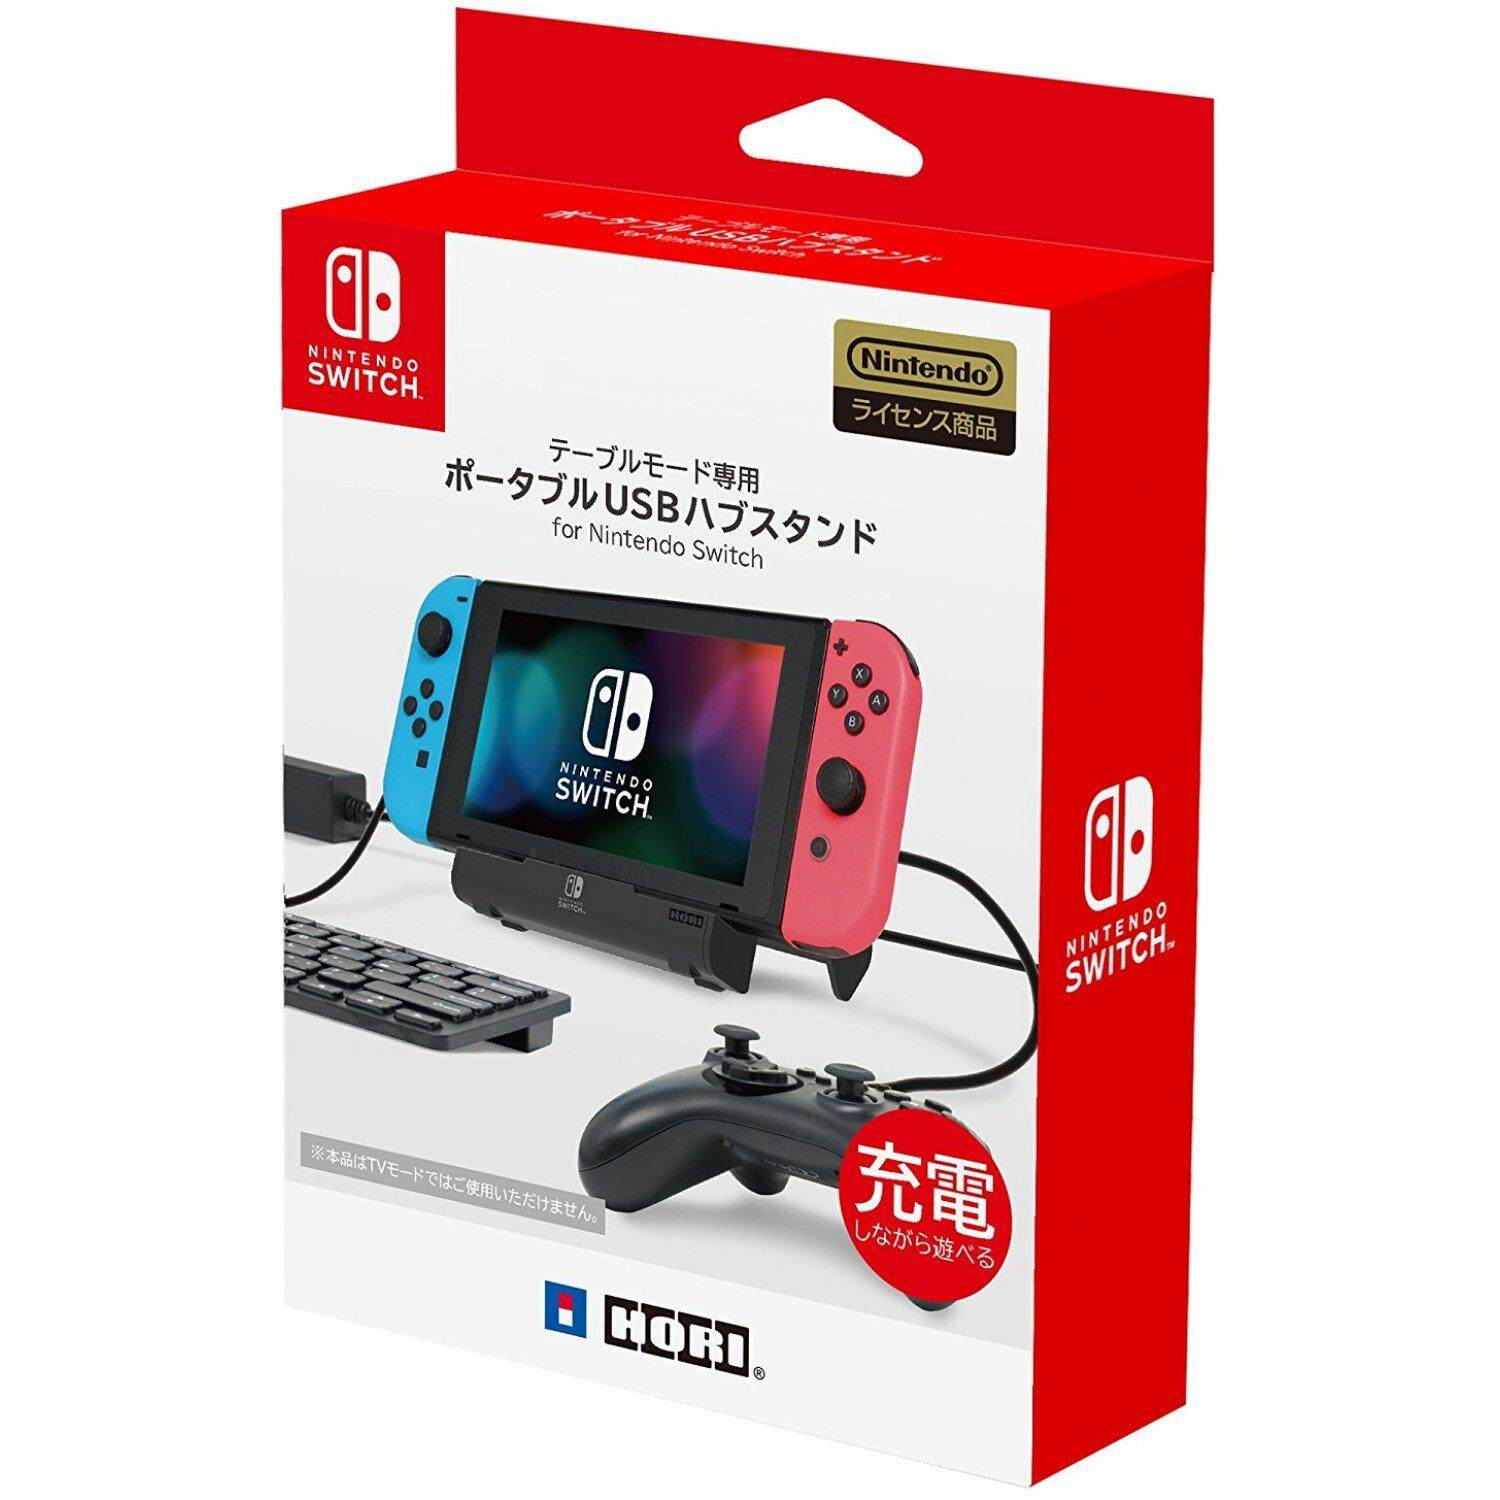 Sell Nsw Nintendo Switch Cheapest Best Quality Th Store Quick Pouch Splatoon2 Thb 1290